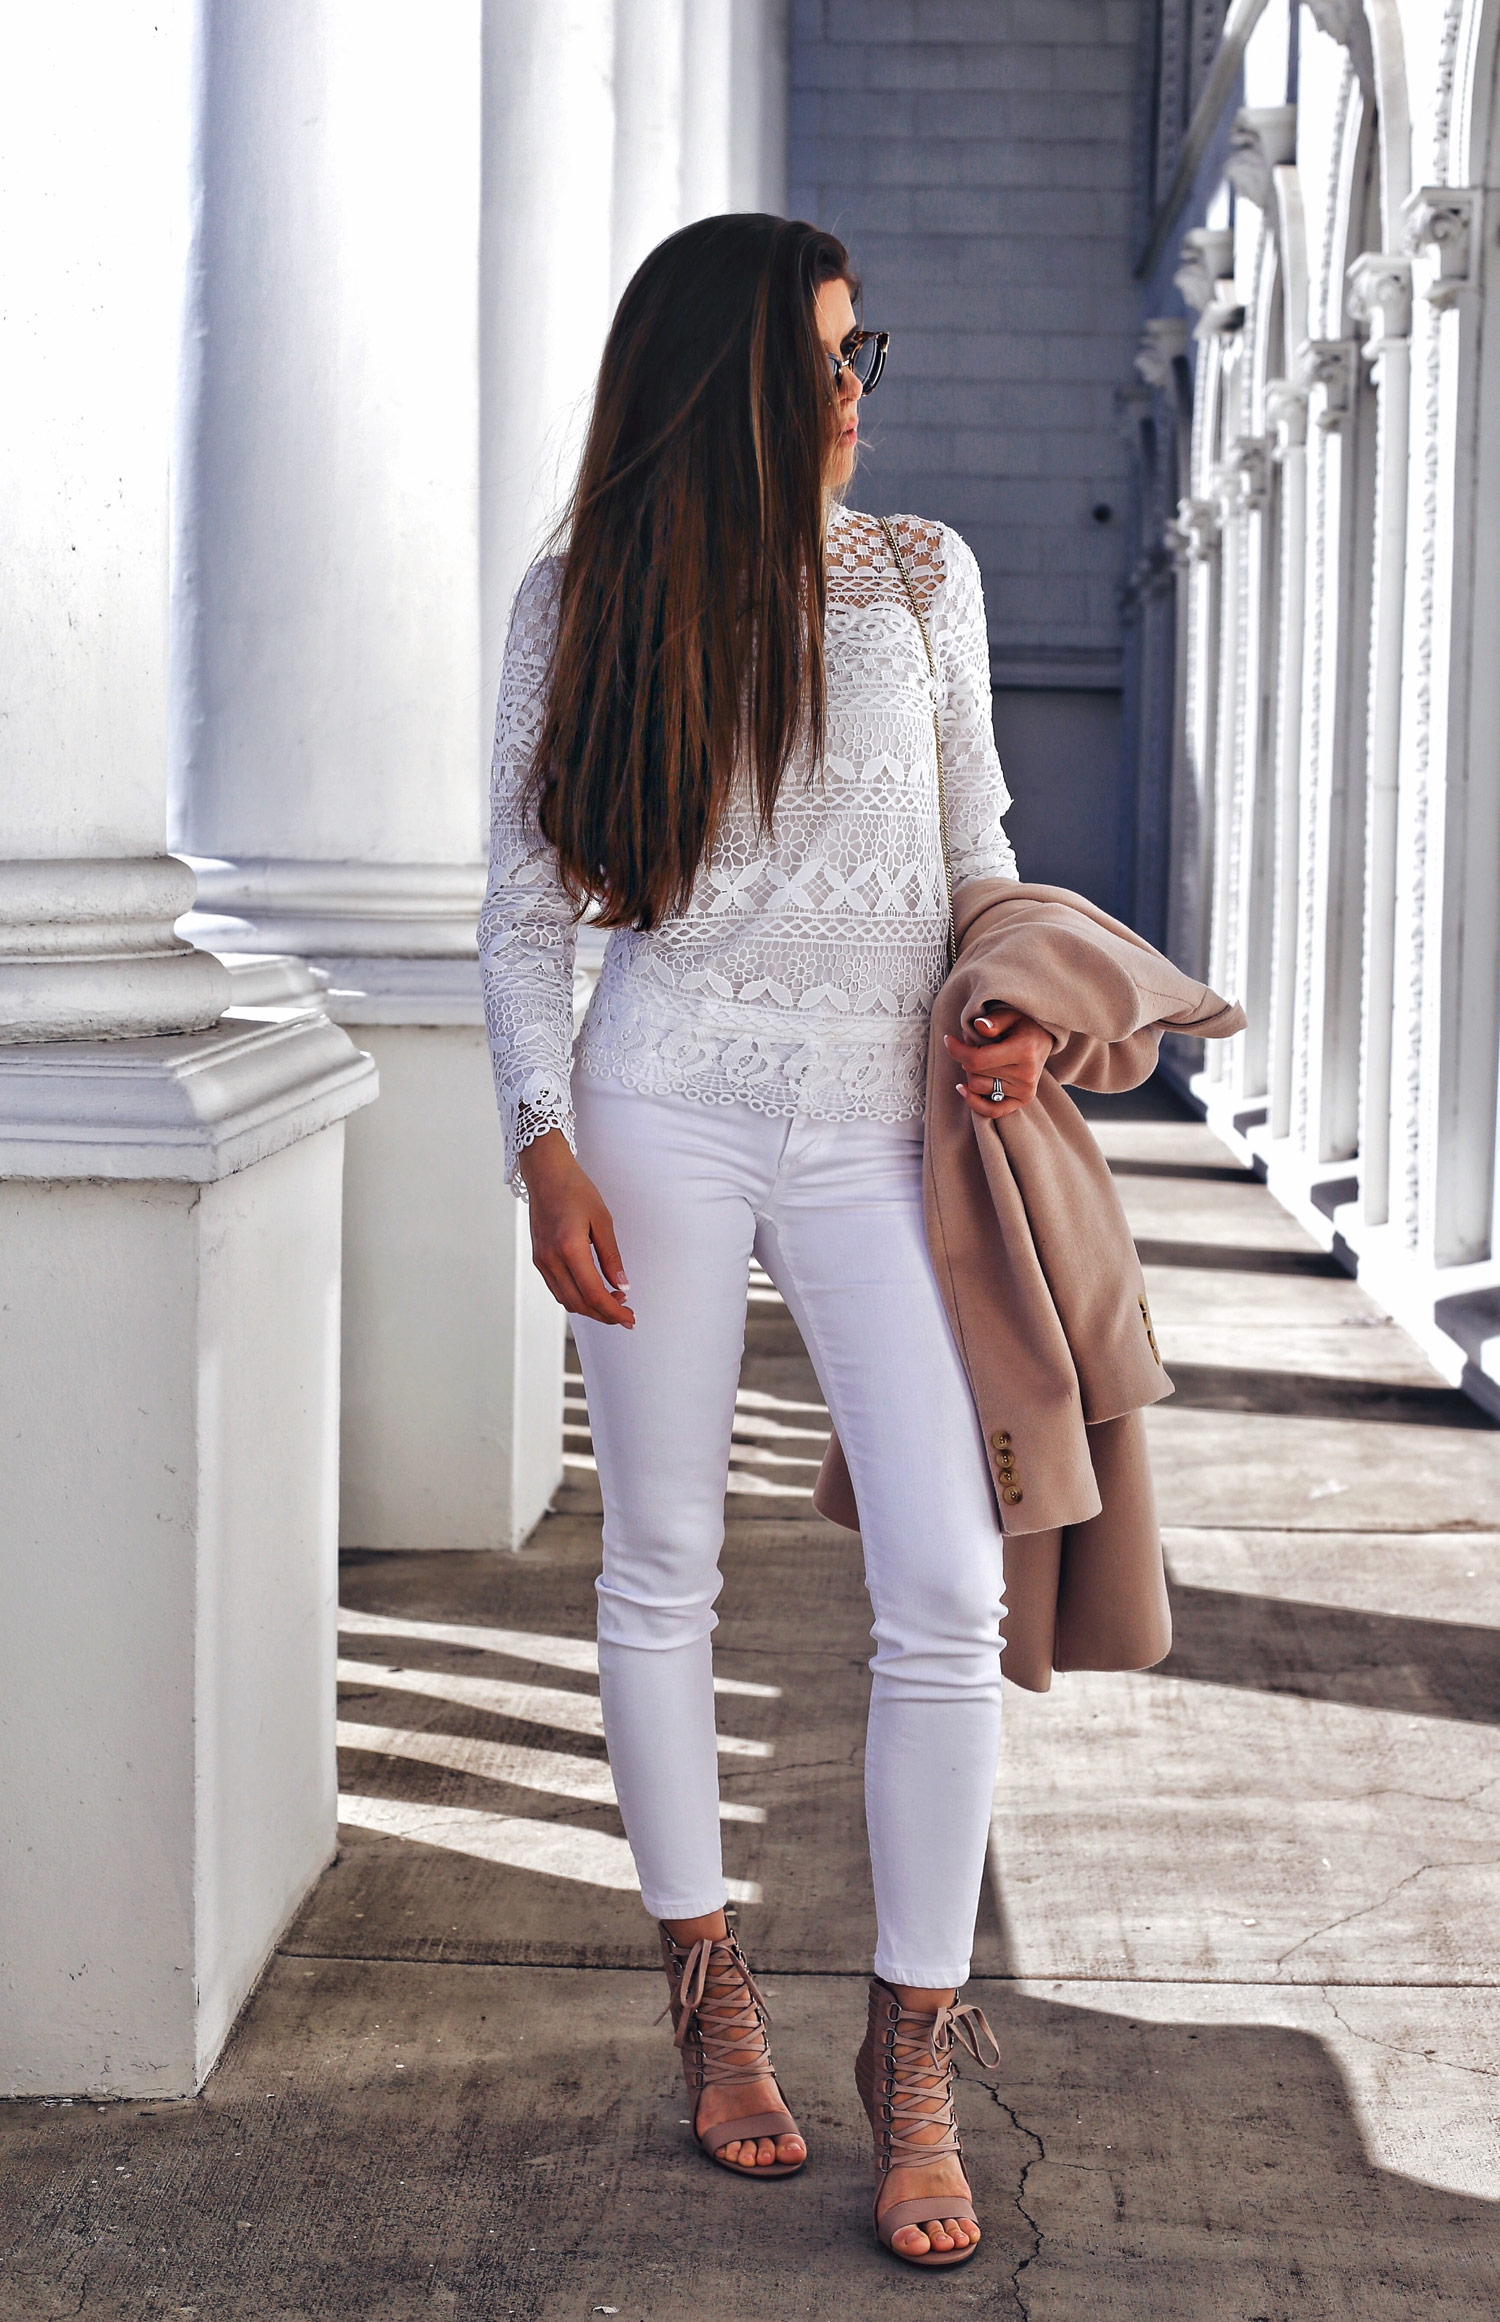 Fashion and lifestyle blogger Adelina Perrin of The Charming Olive wearing Chicwish Lace Top, Joes Jeans from Nordstrom and Senso Shoes